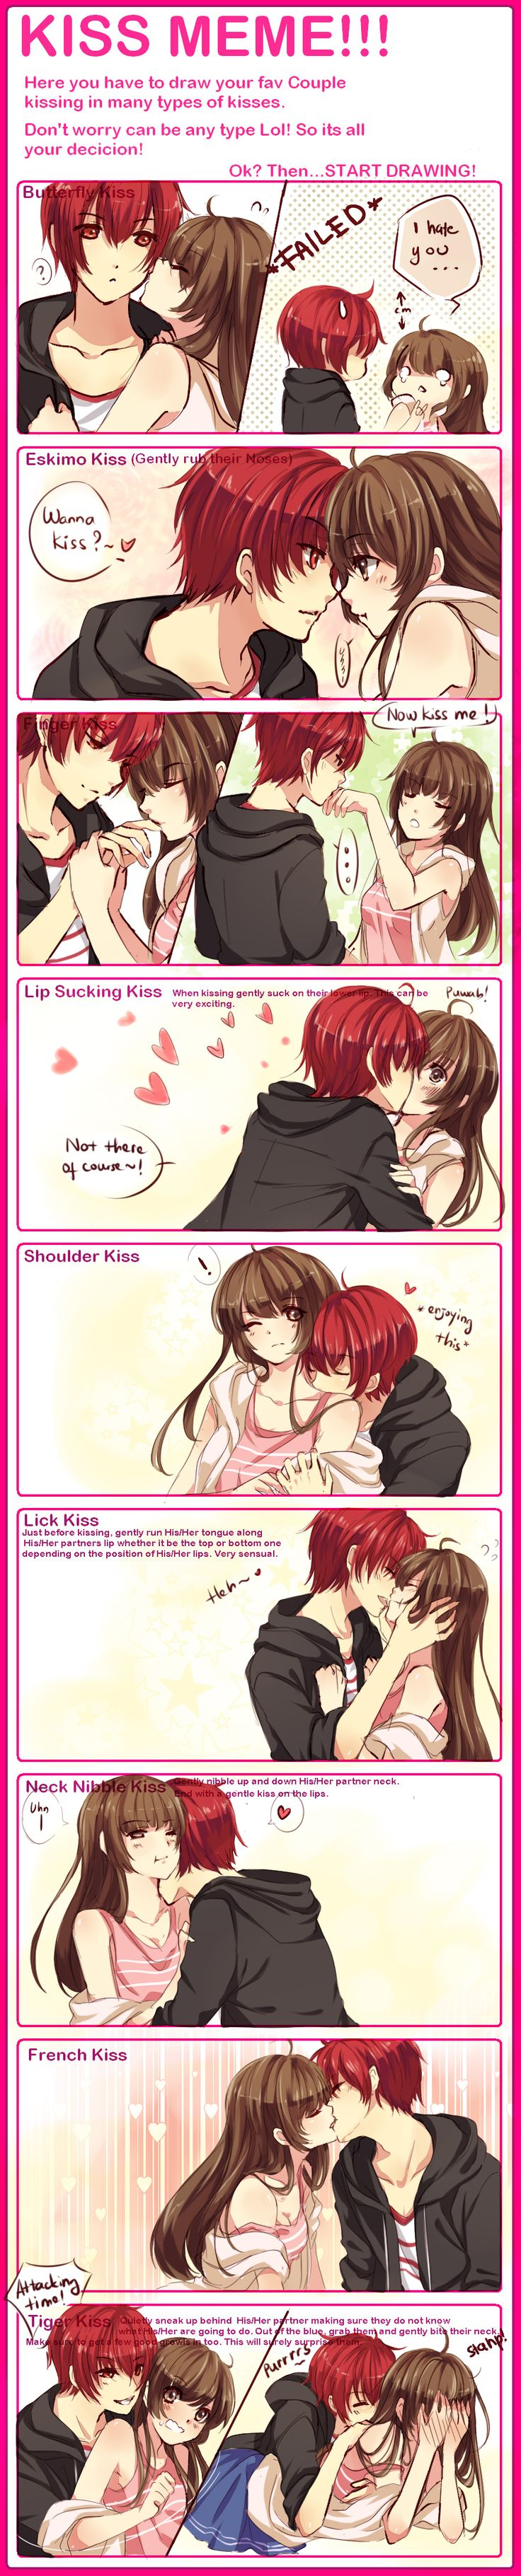 KISS MEME WITH WAIFUUUU by omocha-san.deviantart.com on @deviantART